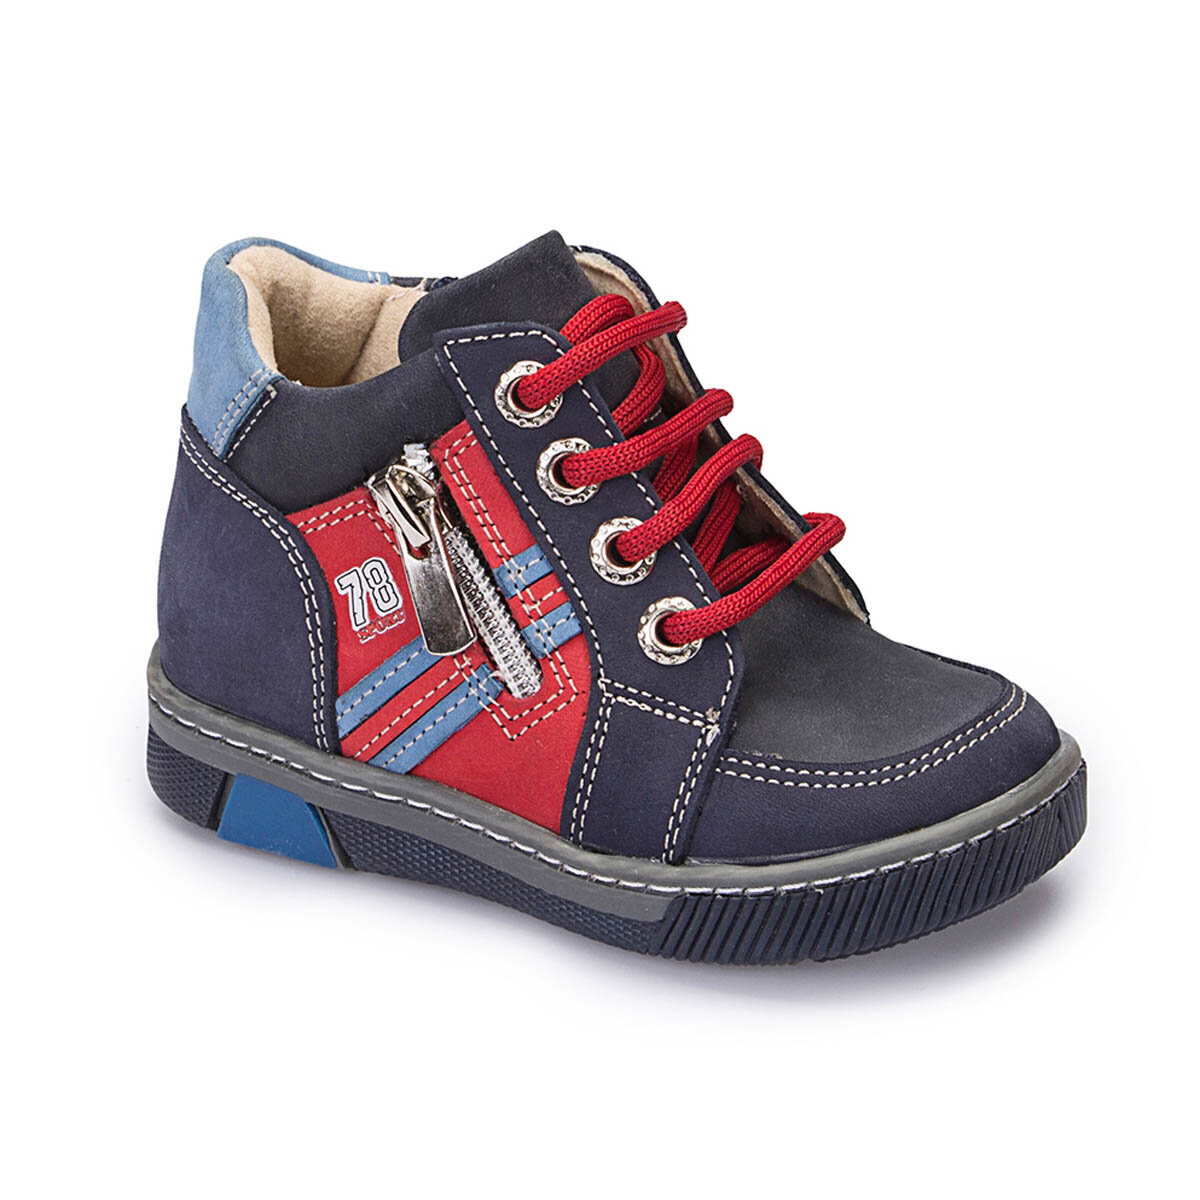 FLO 62.508424.B Navy Blue Male Child Boots Polaris